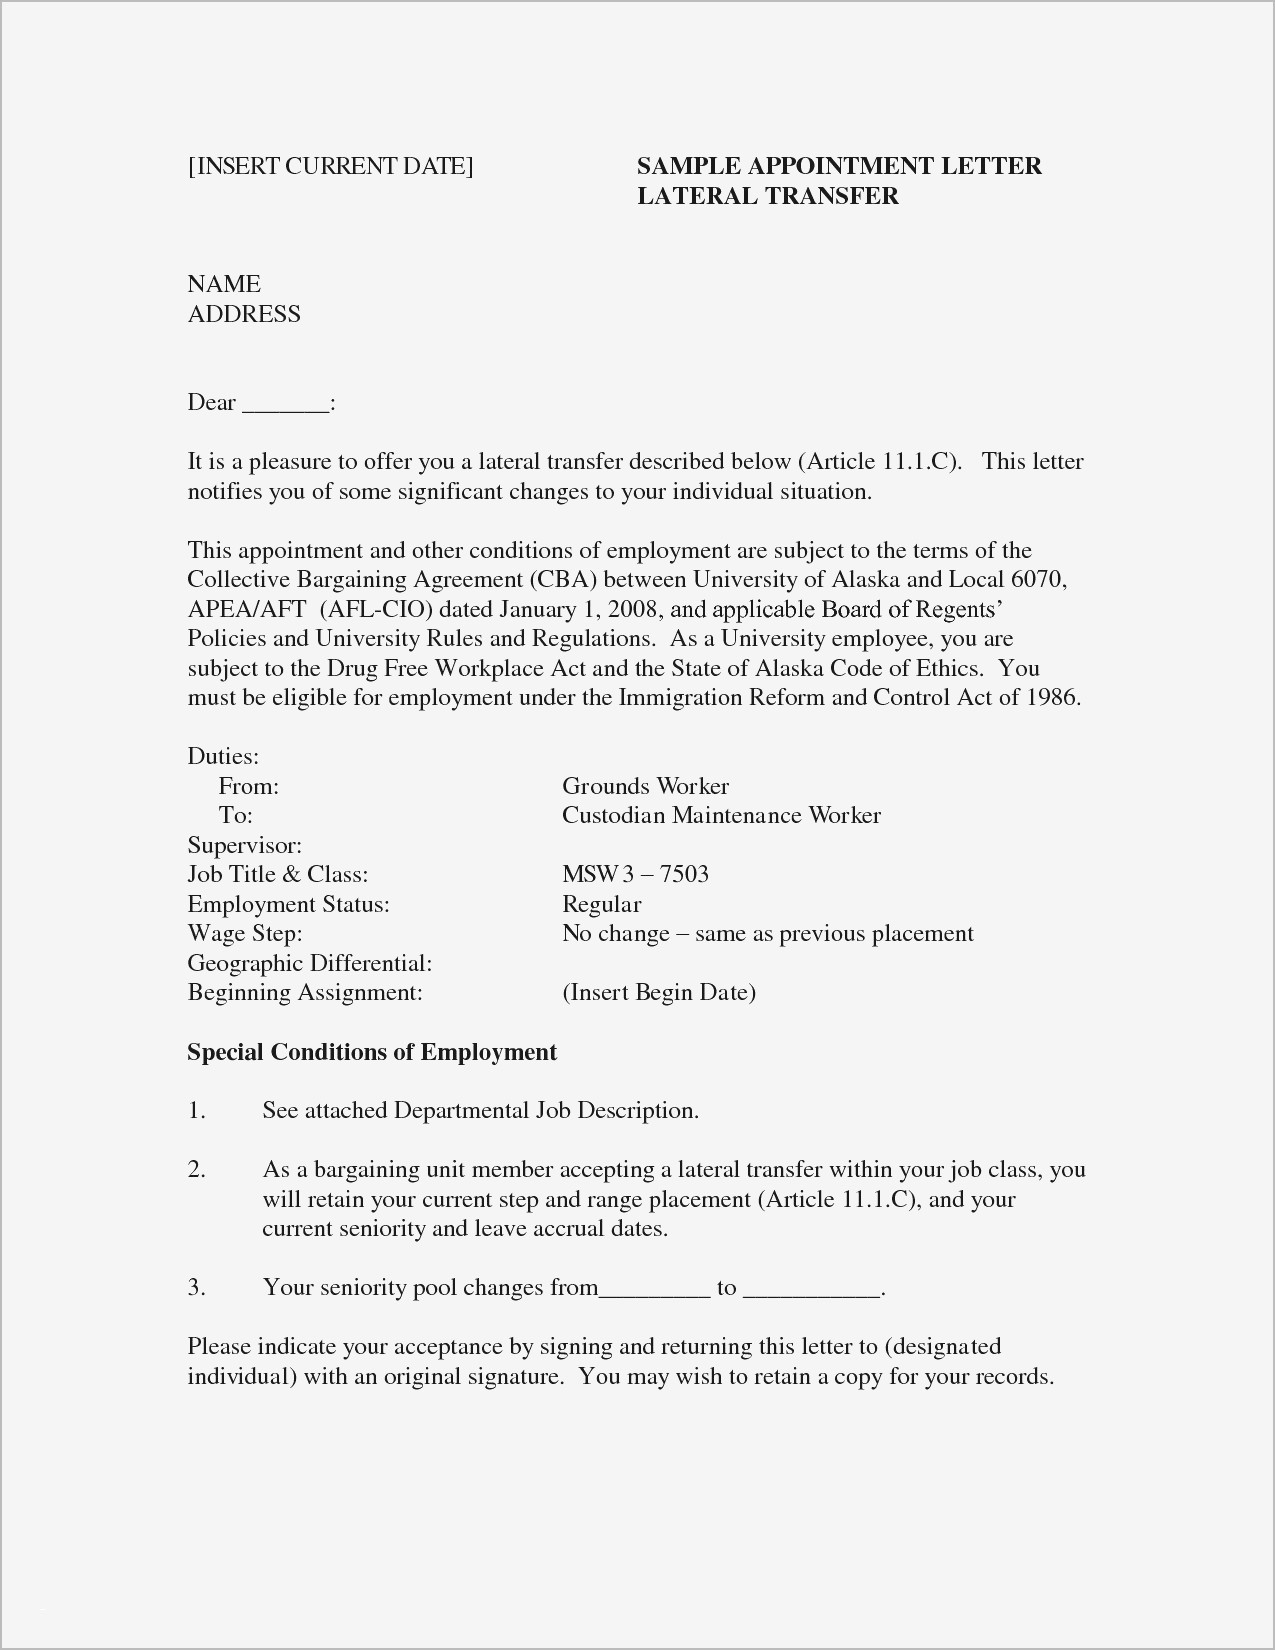 Resume Template for Receptionist - Receptionist Resume Skills Resume Sample for Job All Resume